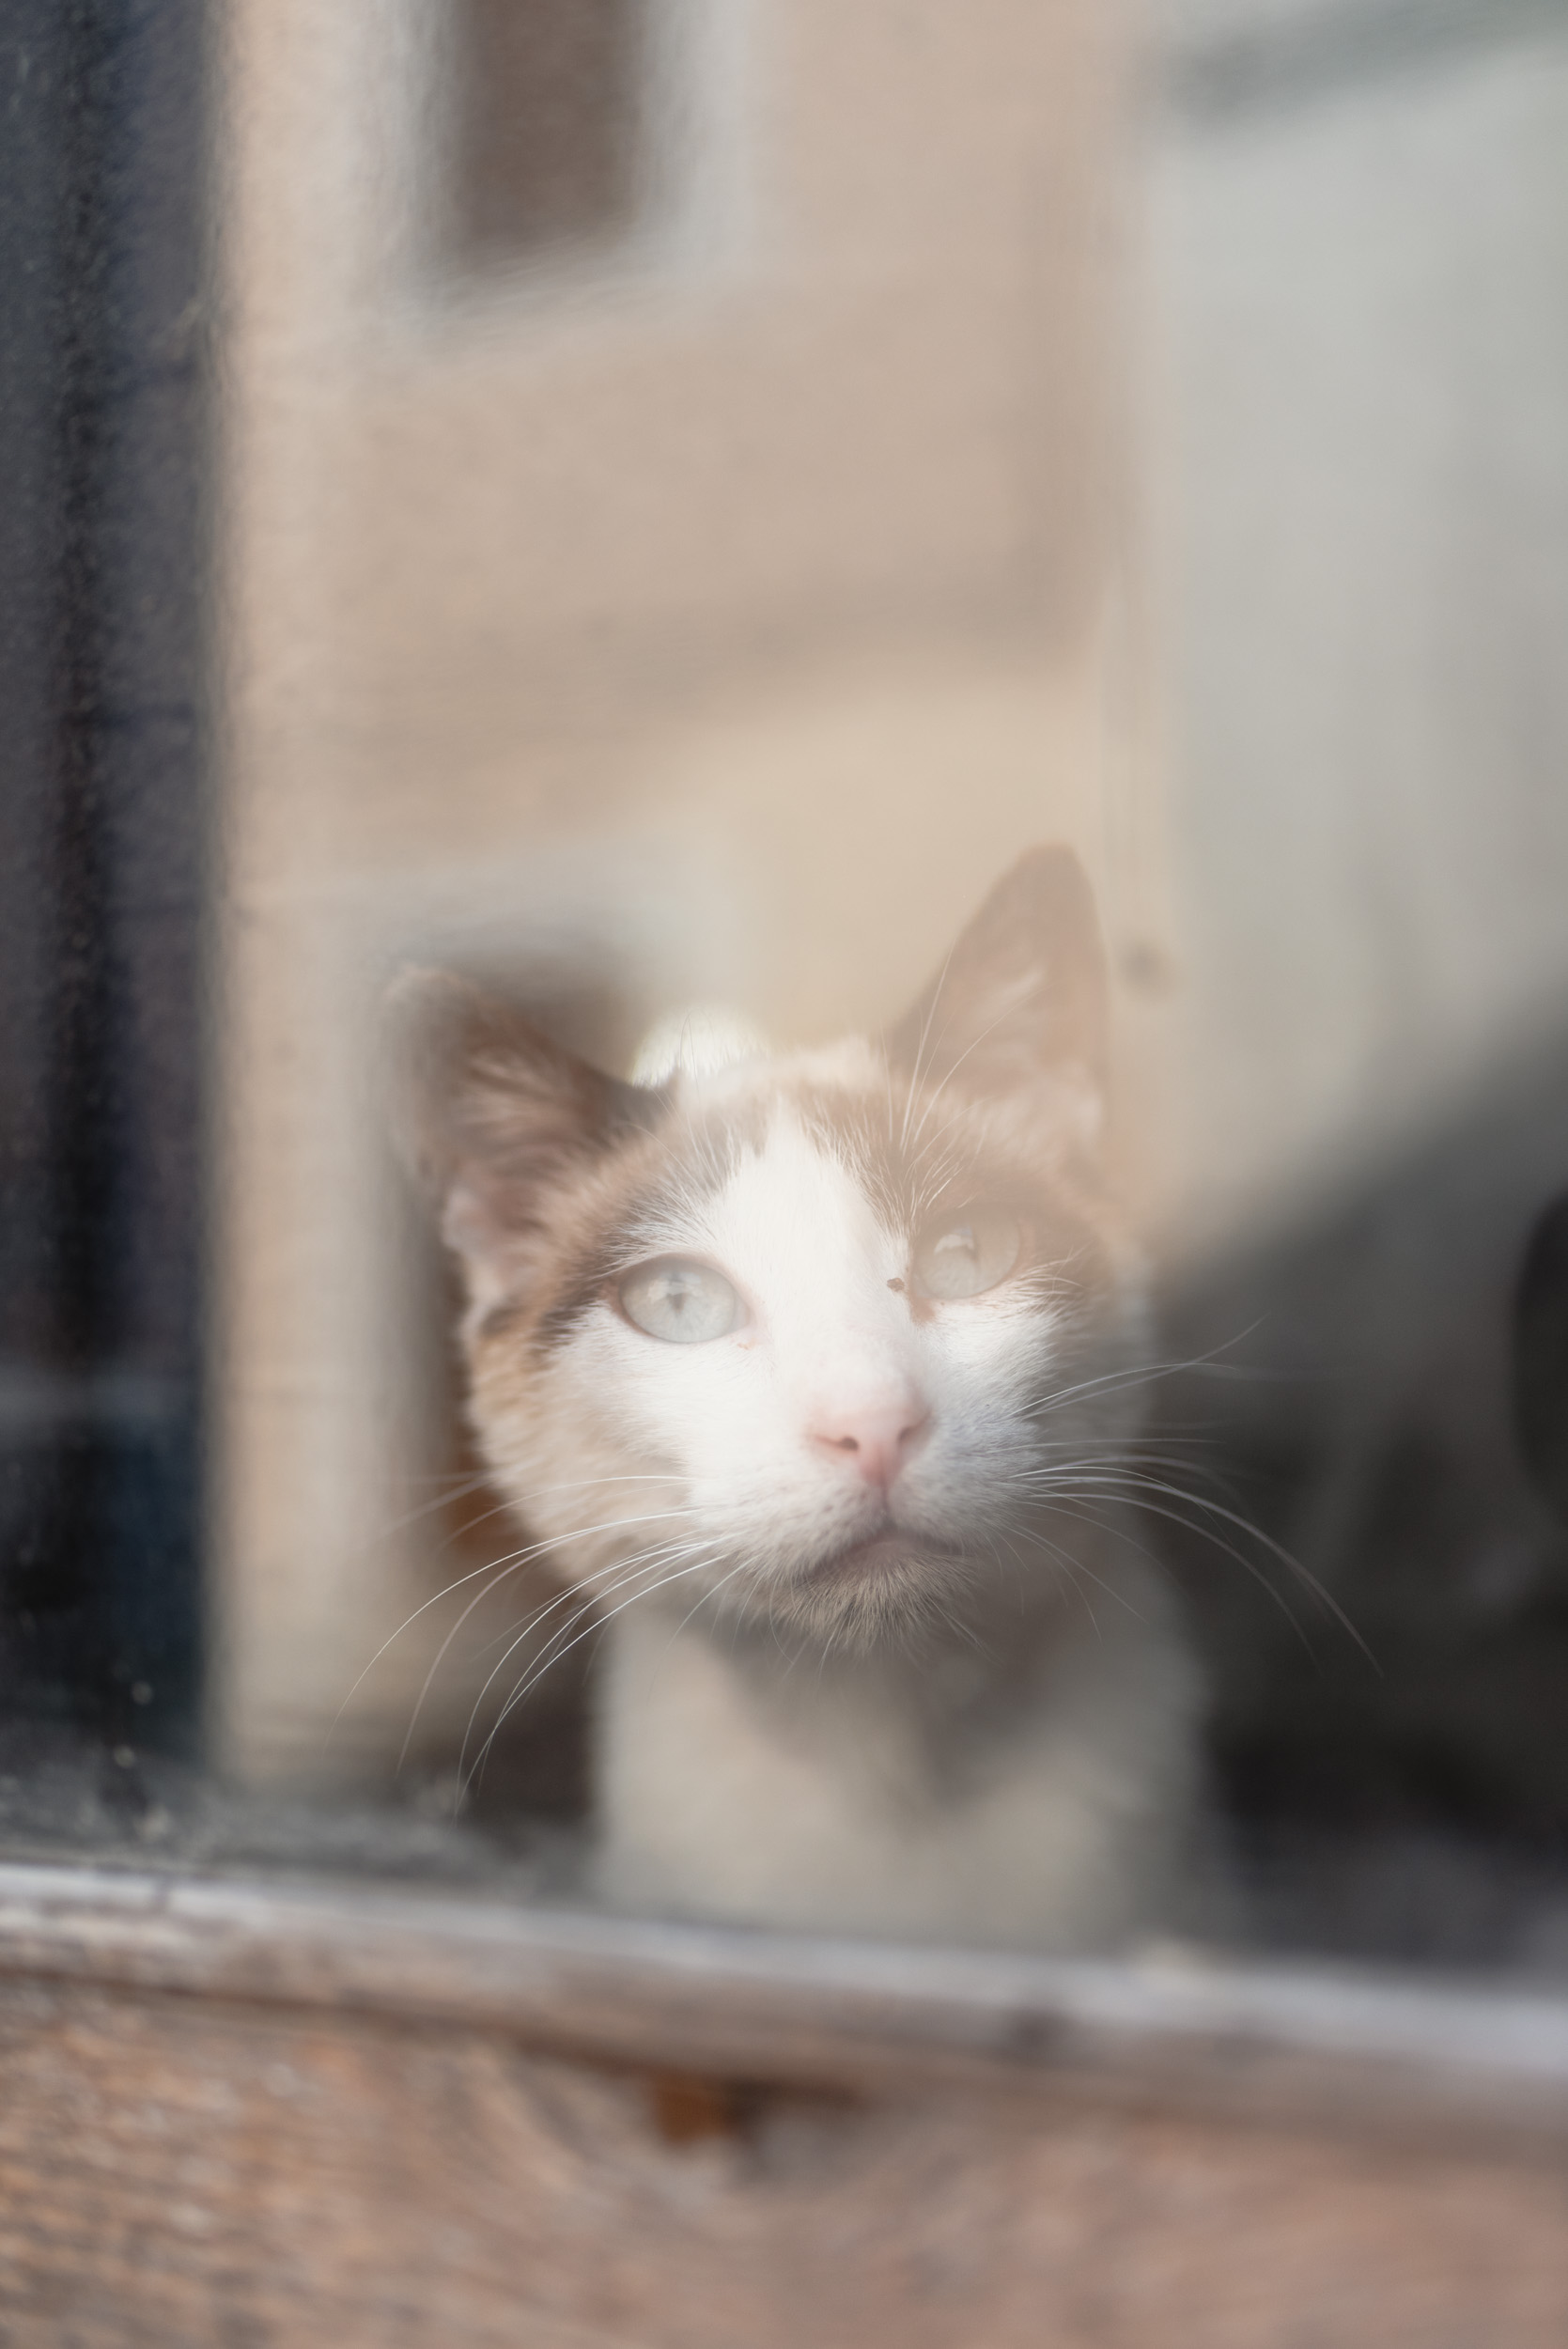 Cat looking through window in Banyalbufar, Spain